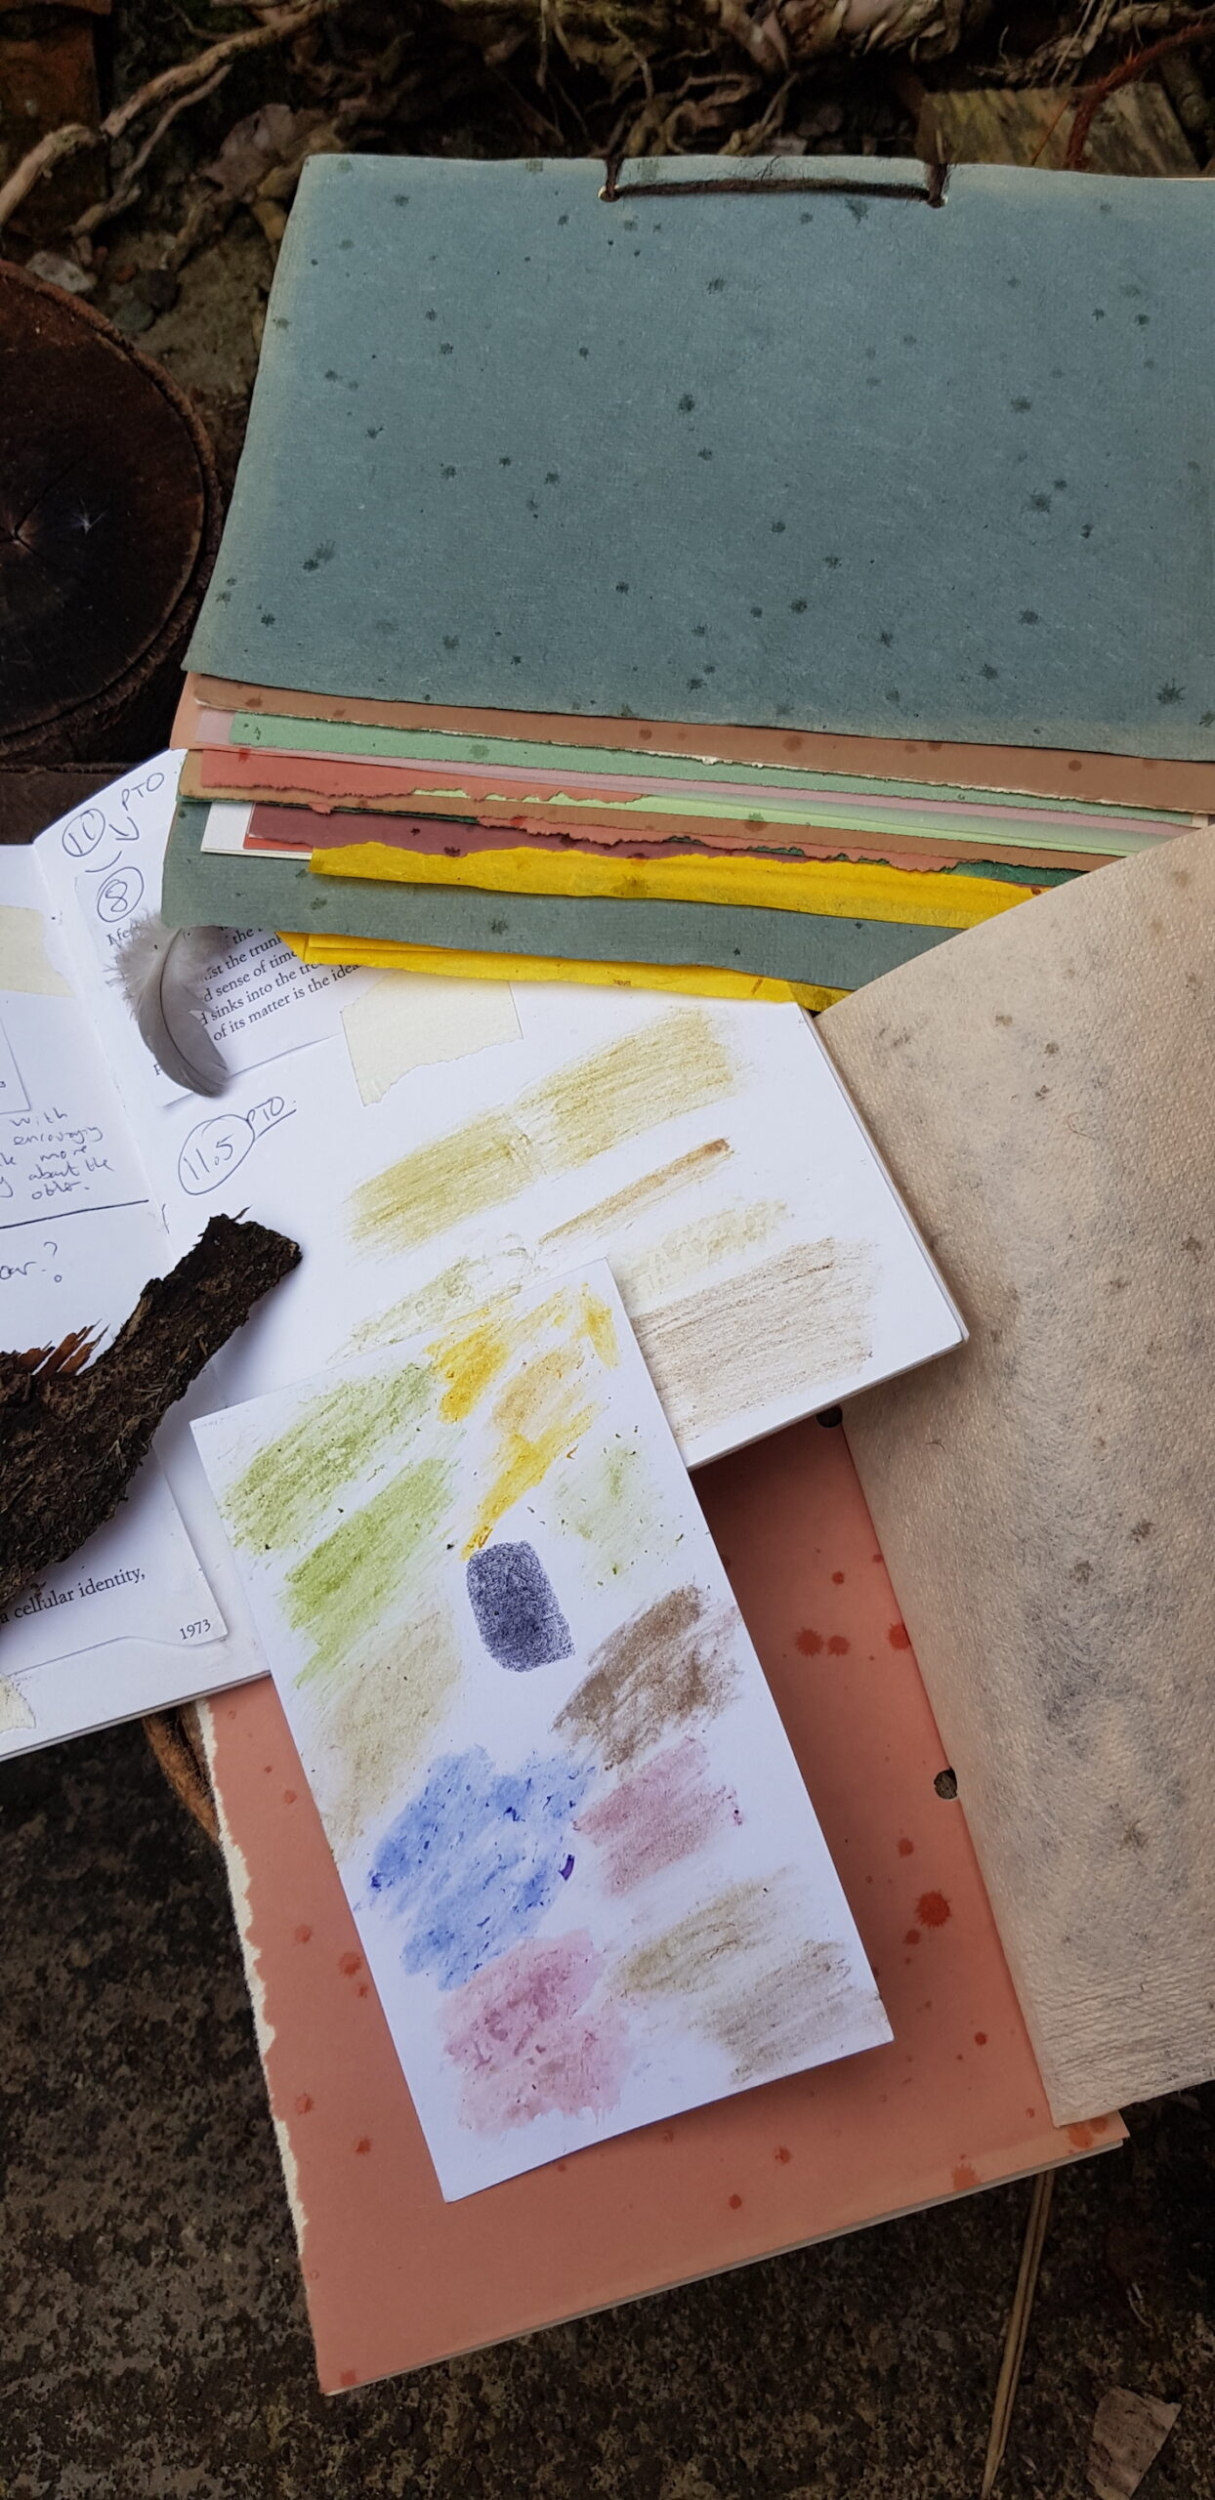 Handmade sketch books from poetry walks for adults.